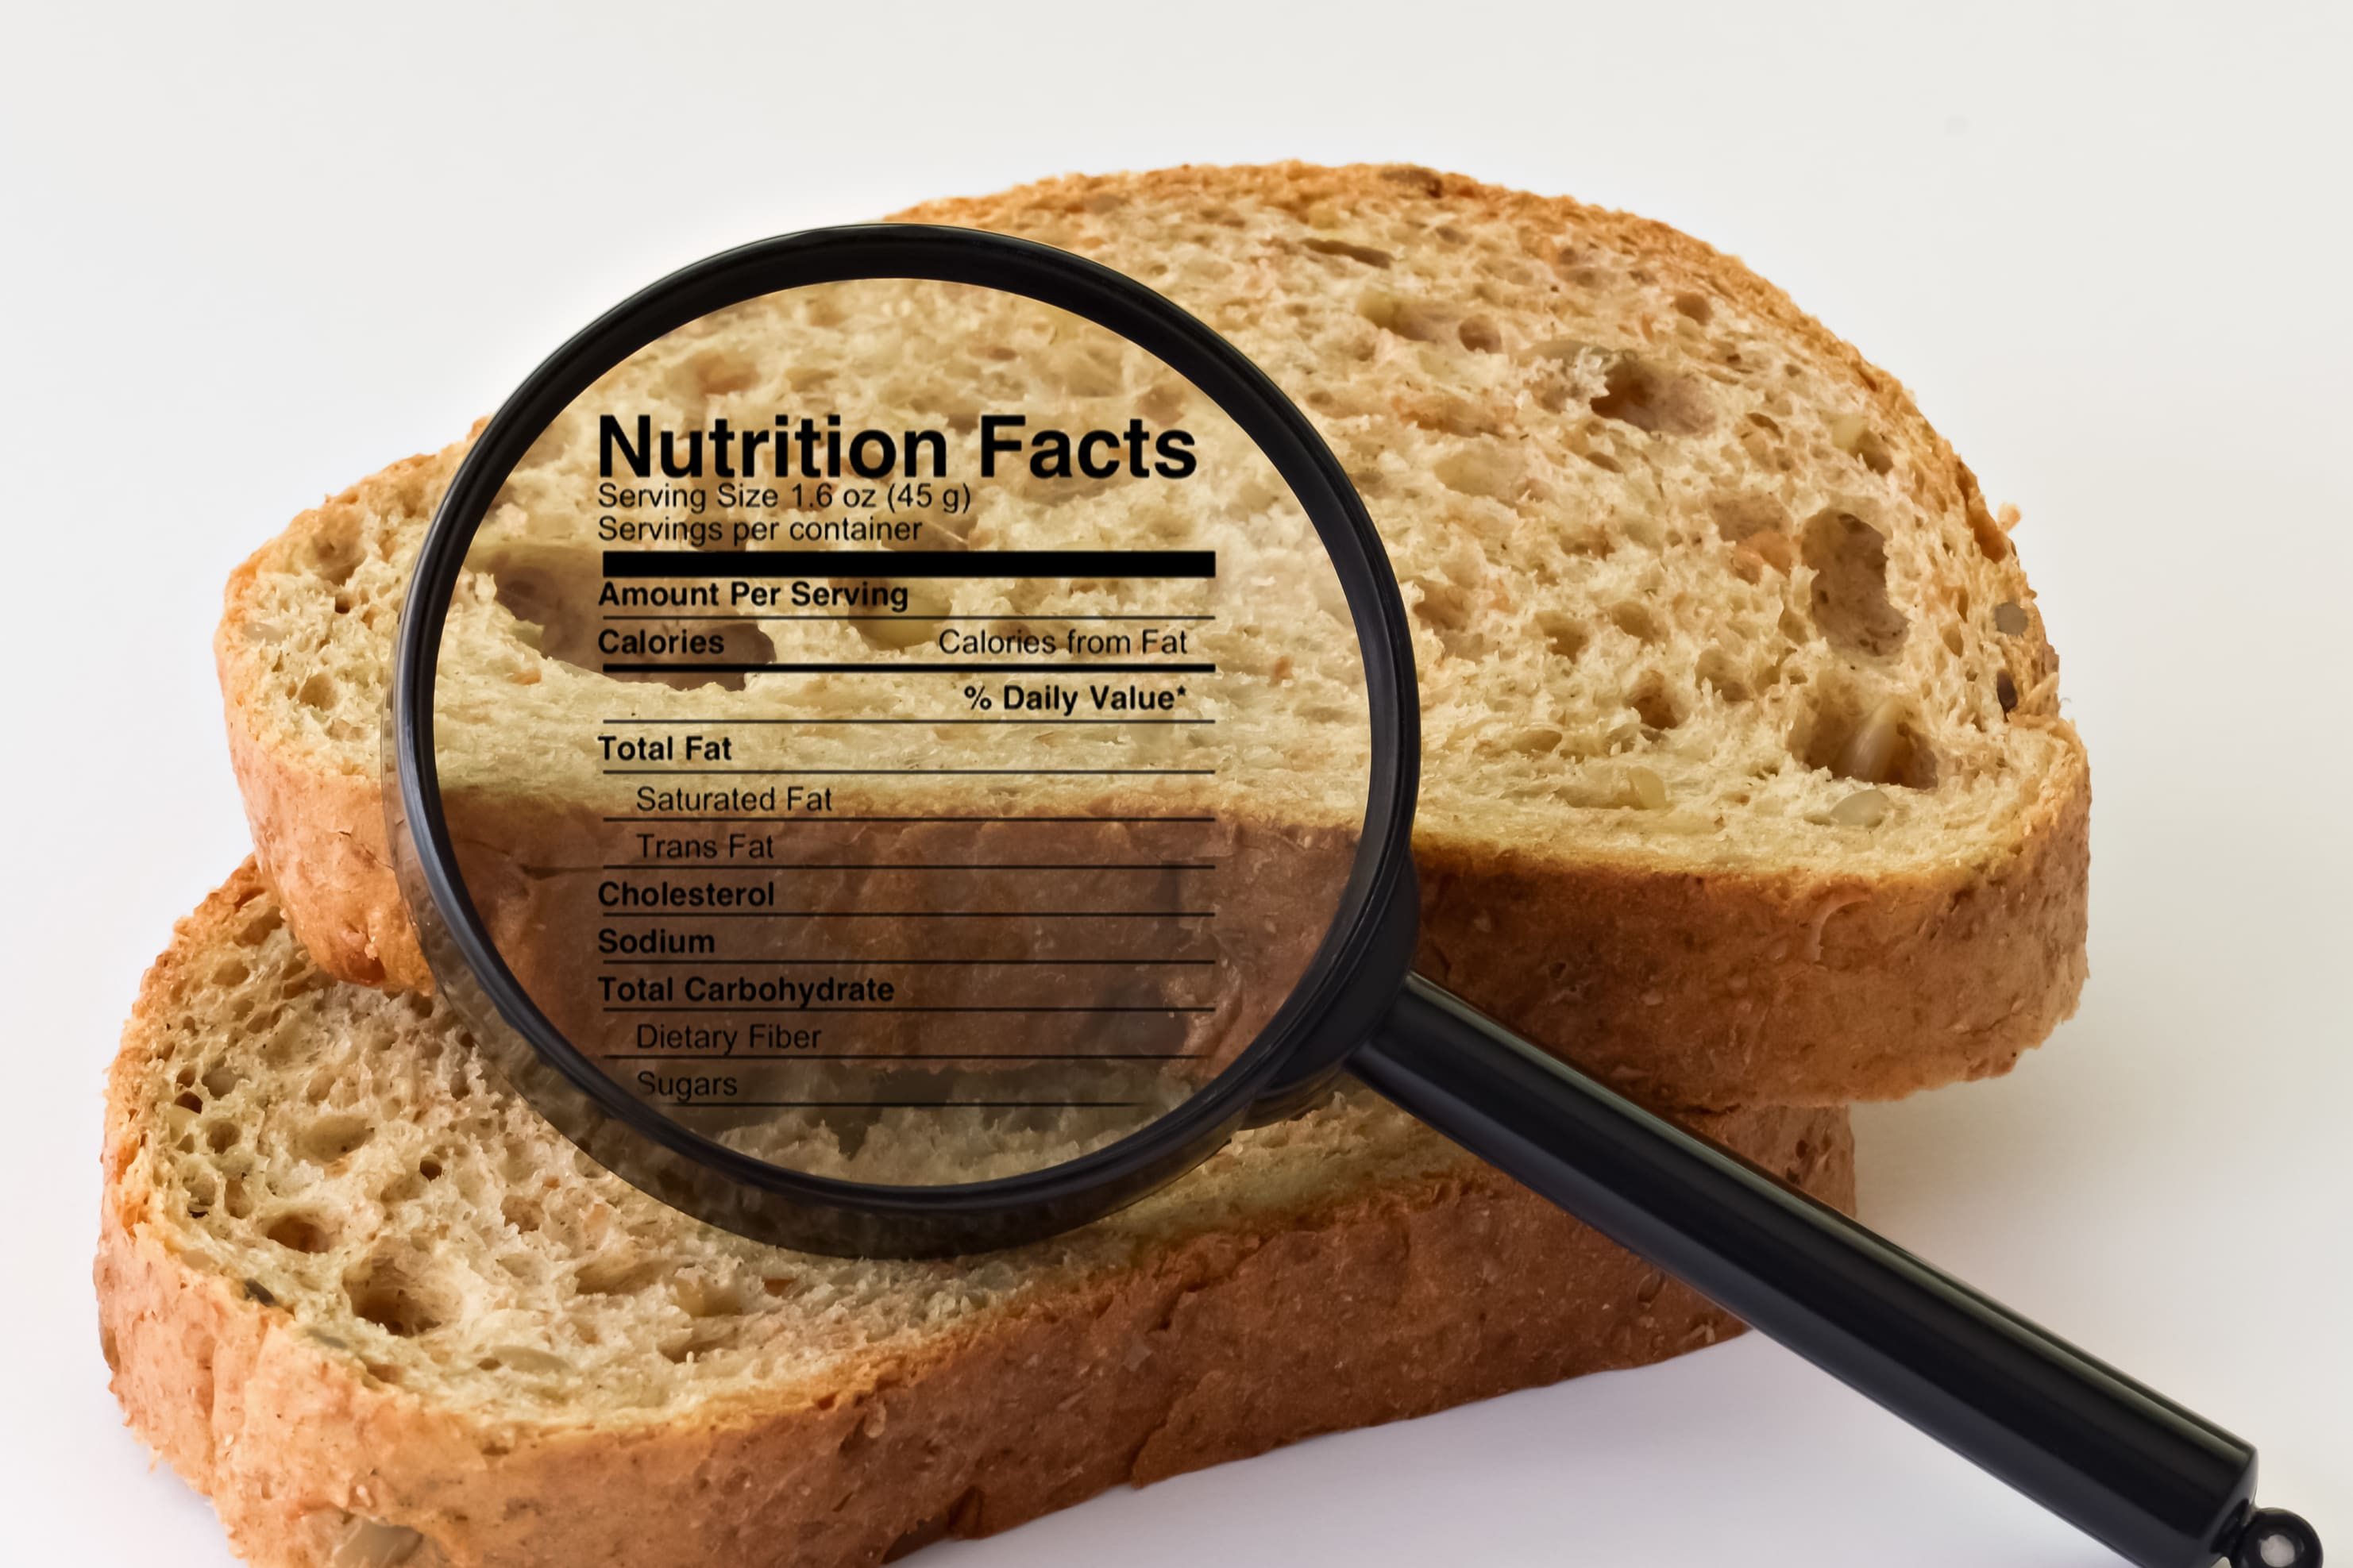 Nutrition Facts for Bread